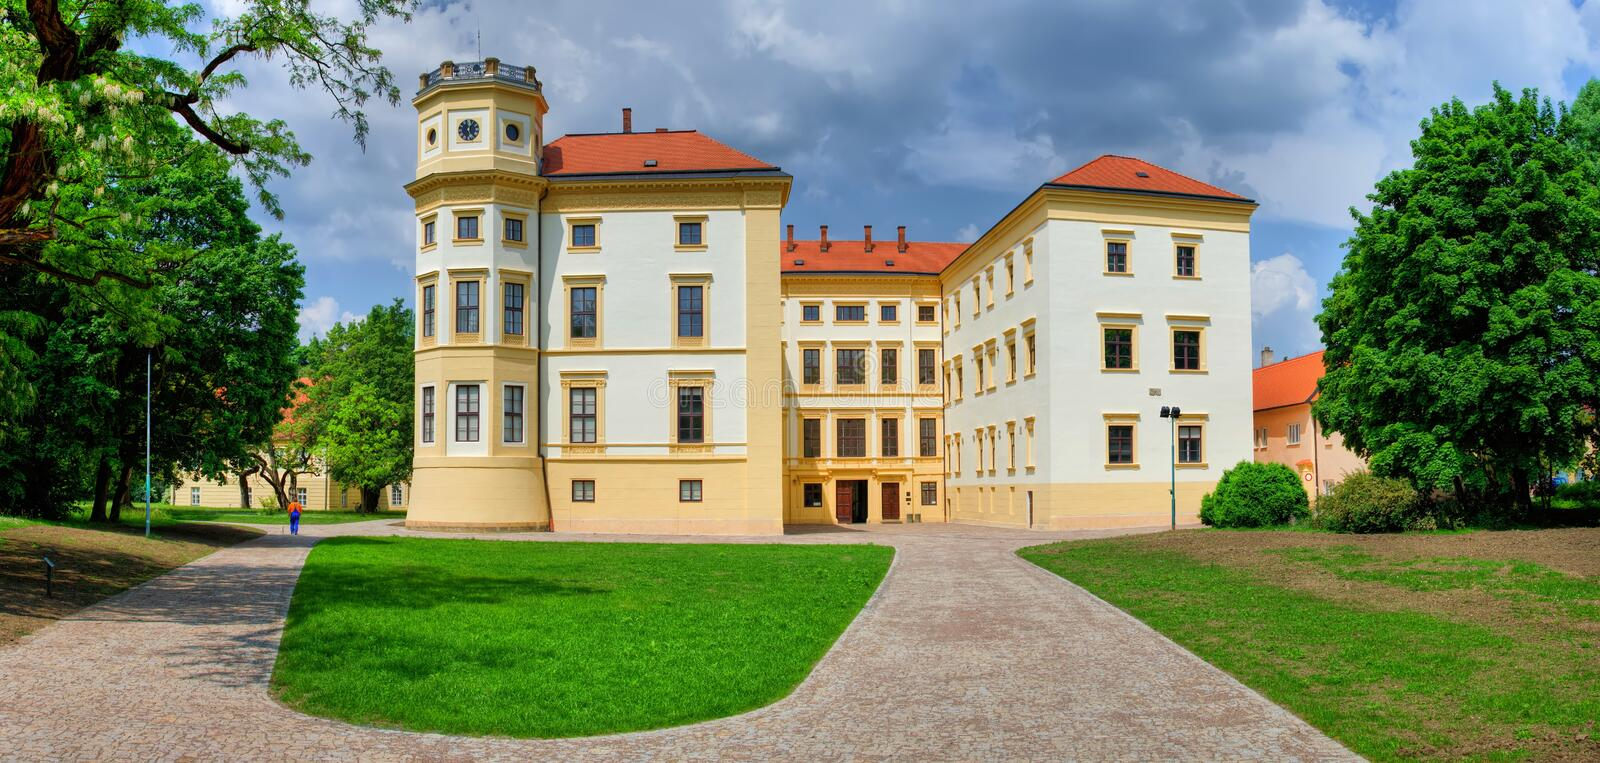 Chateau Straznice.Czech republic.Moravia. Chateau Straznice during a sunny day with blue sky and clouds.Moravia.Czech republic.Big panorama royalty free stock image